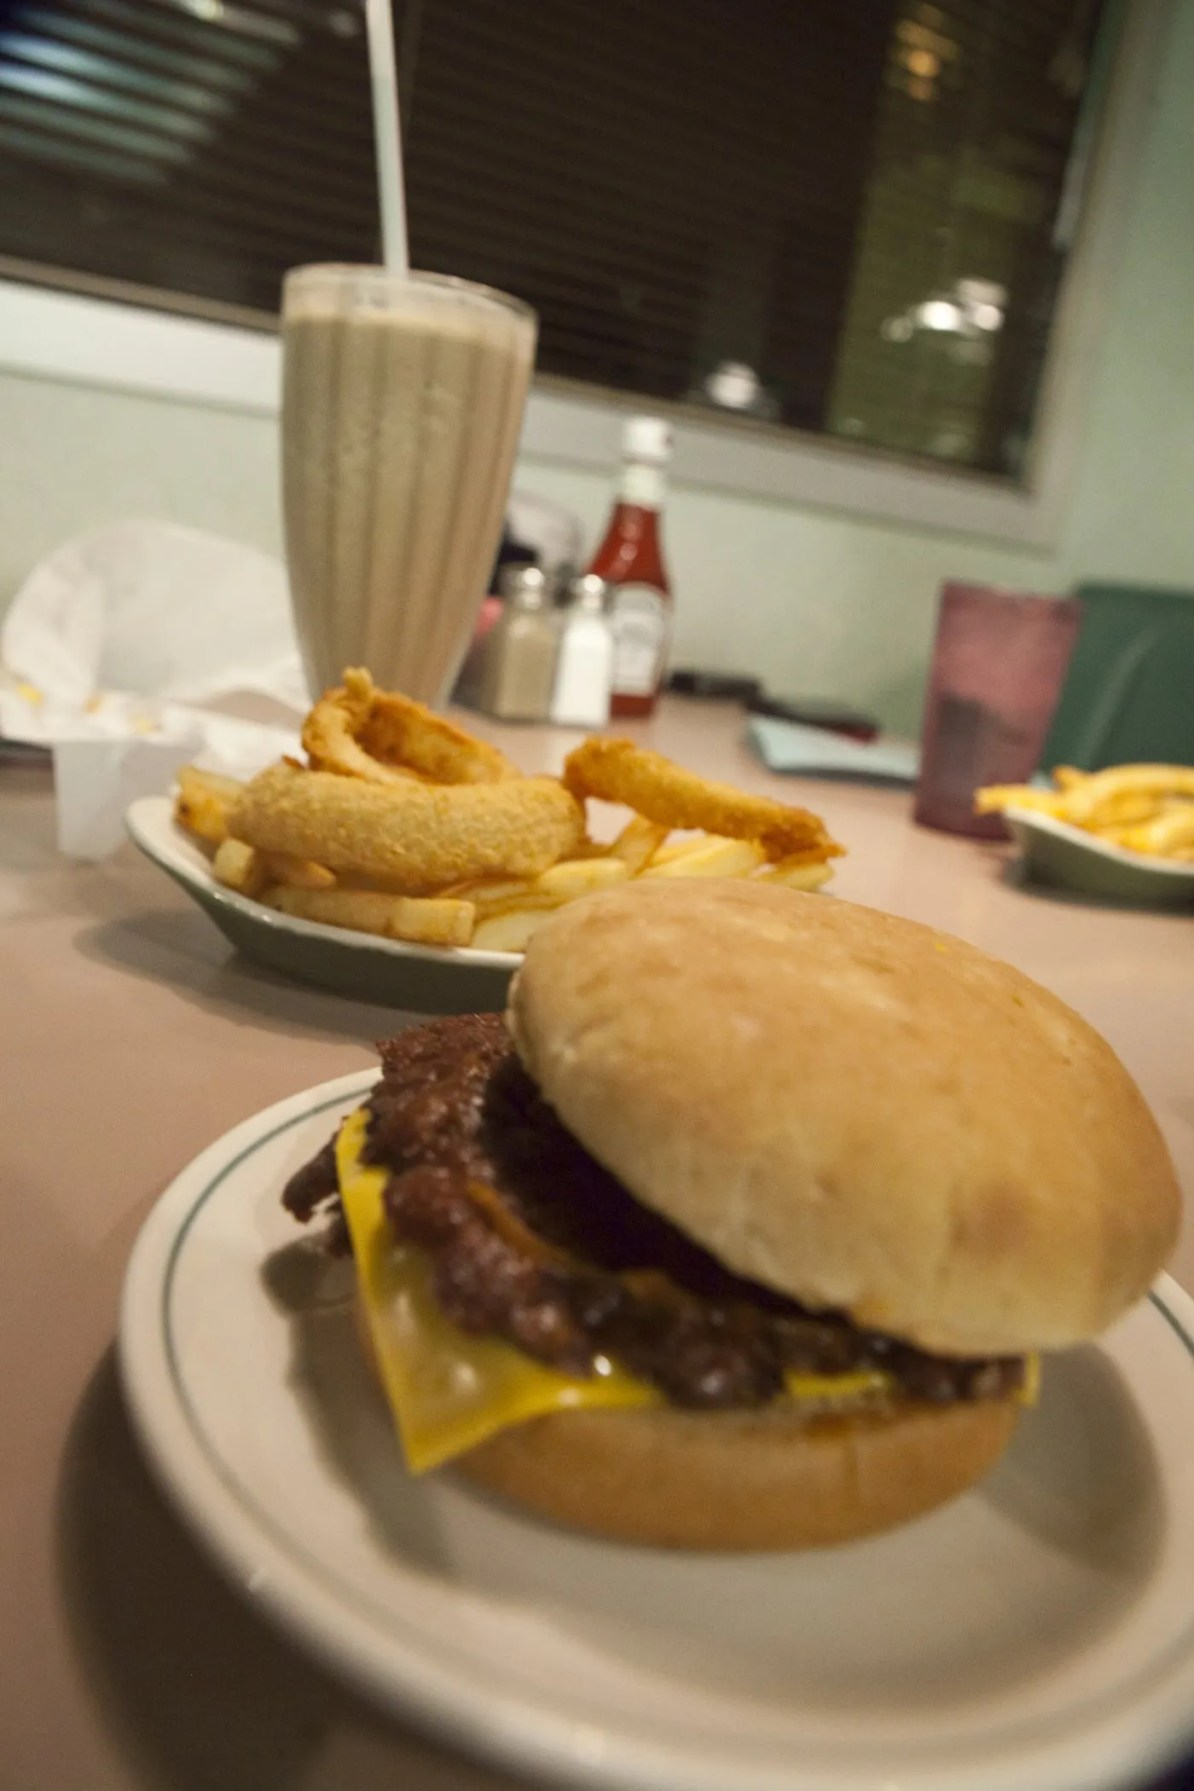 Double hamburger with cheese, a 50/50 of fries and onion rings, and a chocolate milkshake at Winstead's in Overland Park, Kansas.